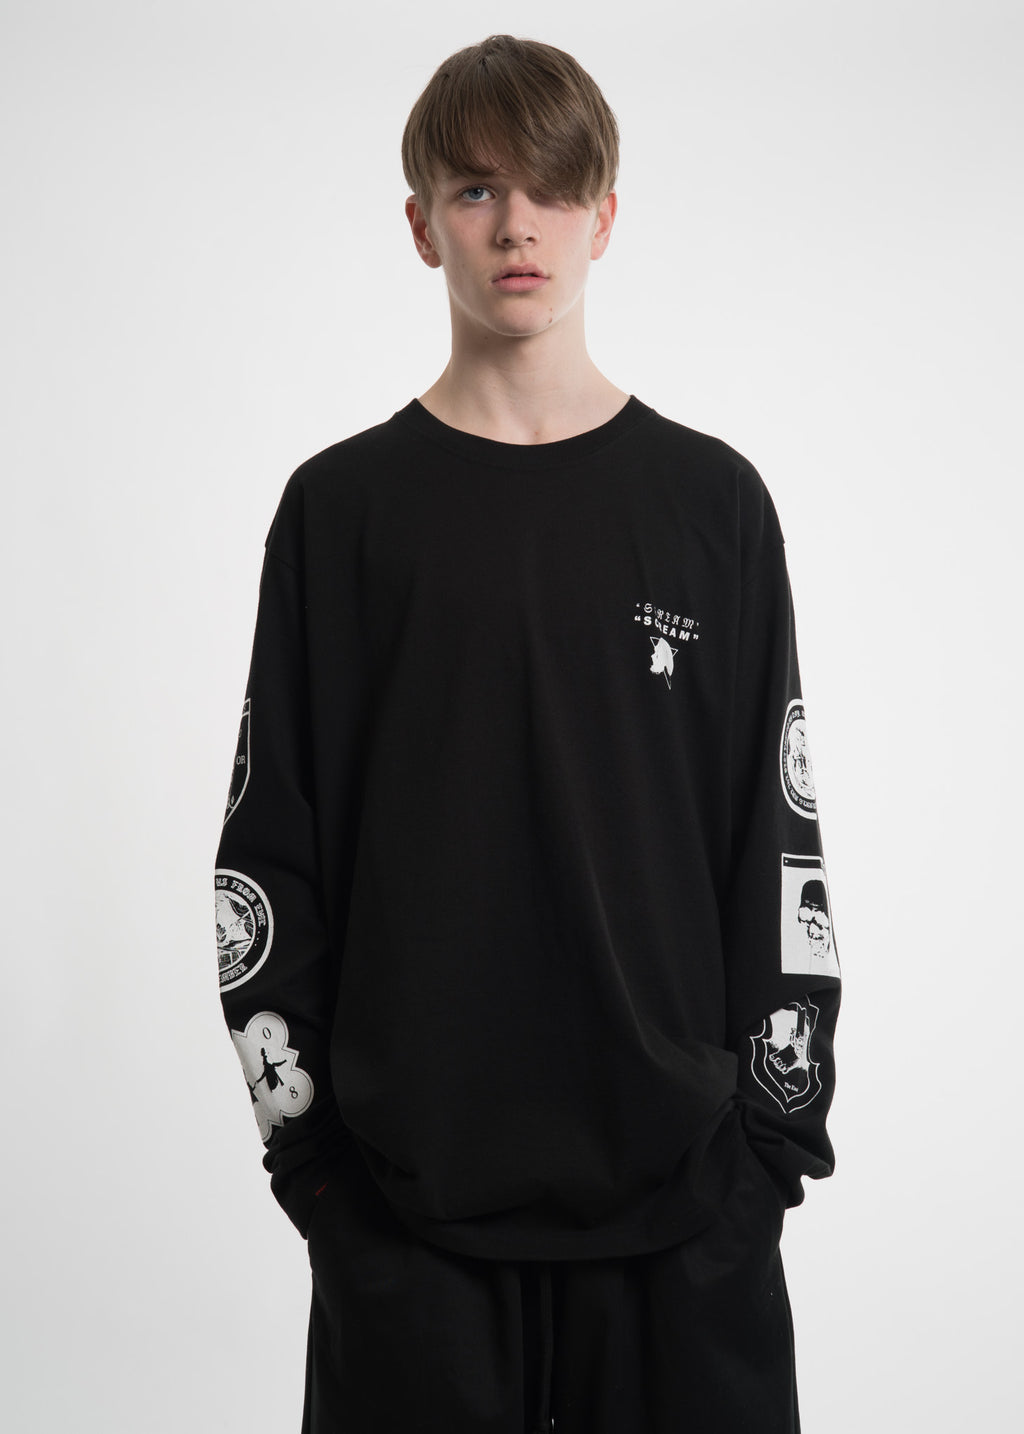 Black Graphic L/S T-Shirt